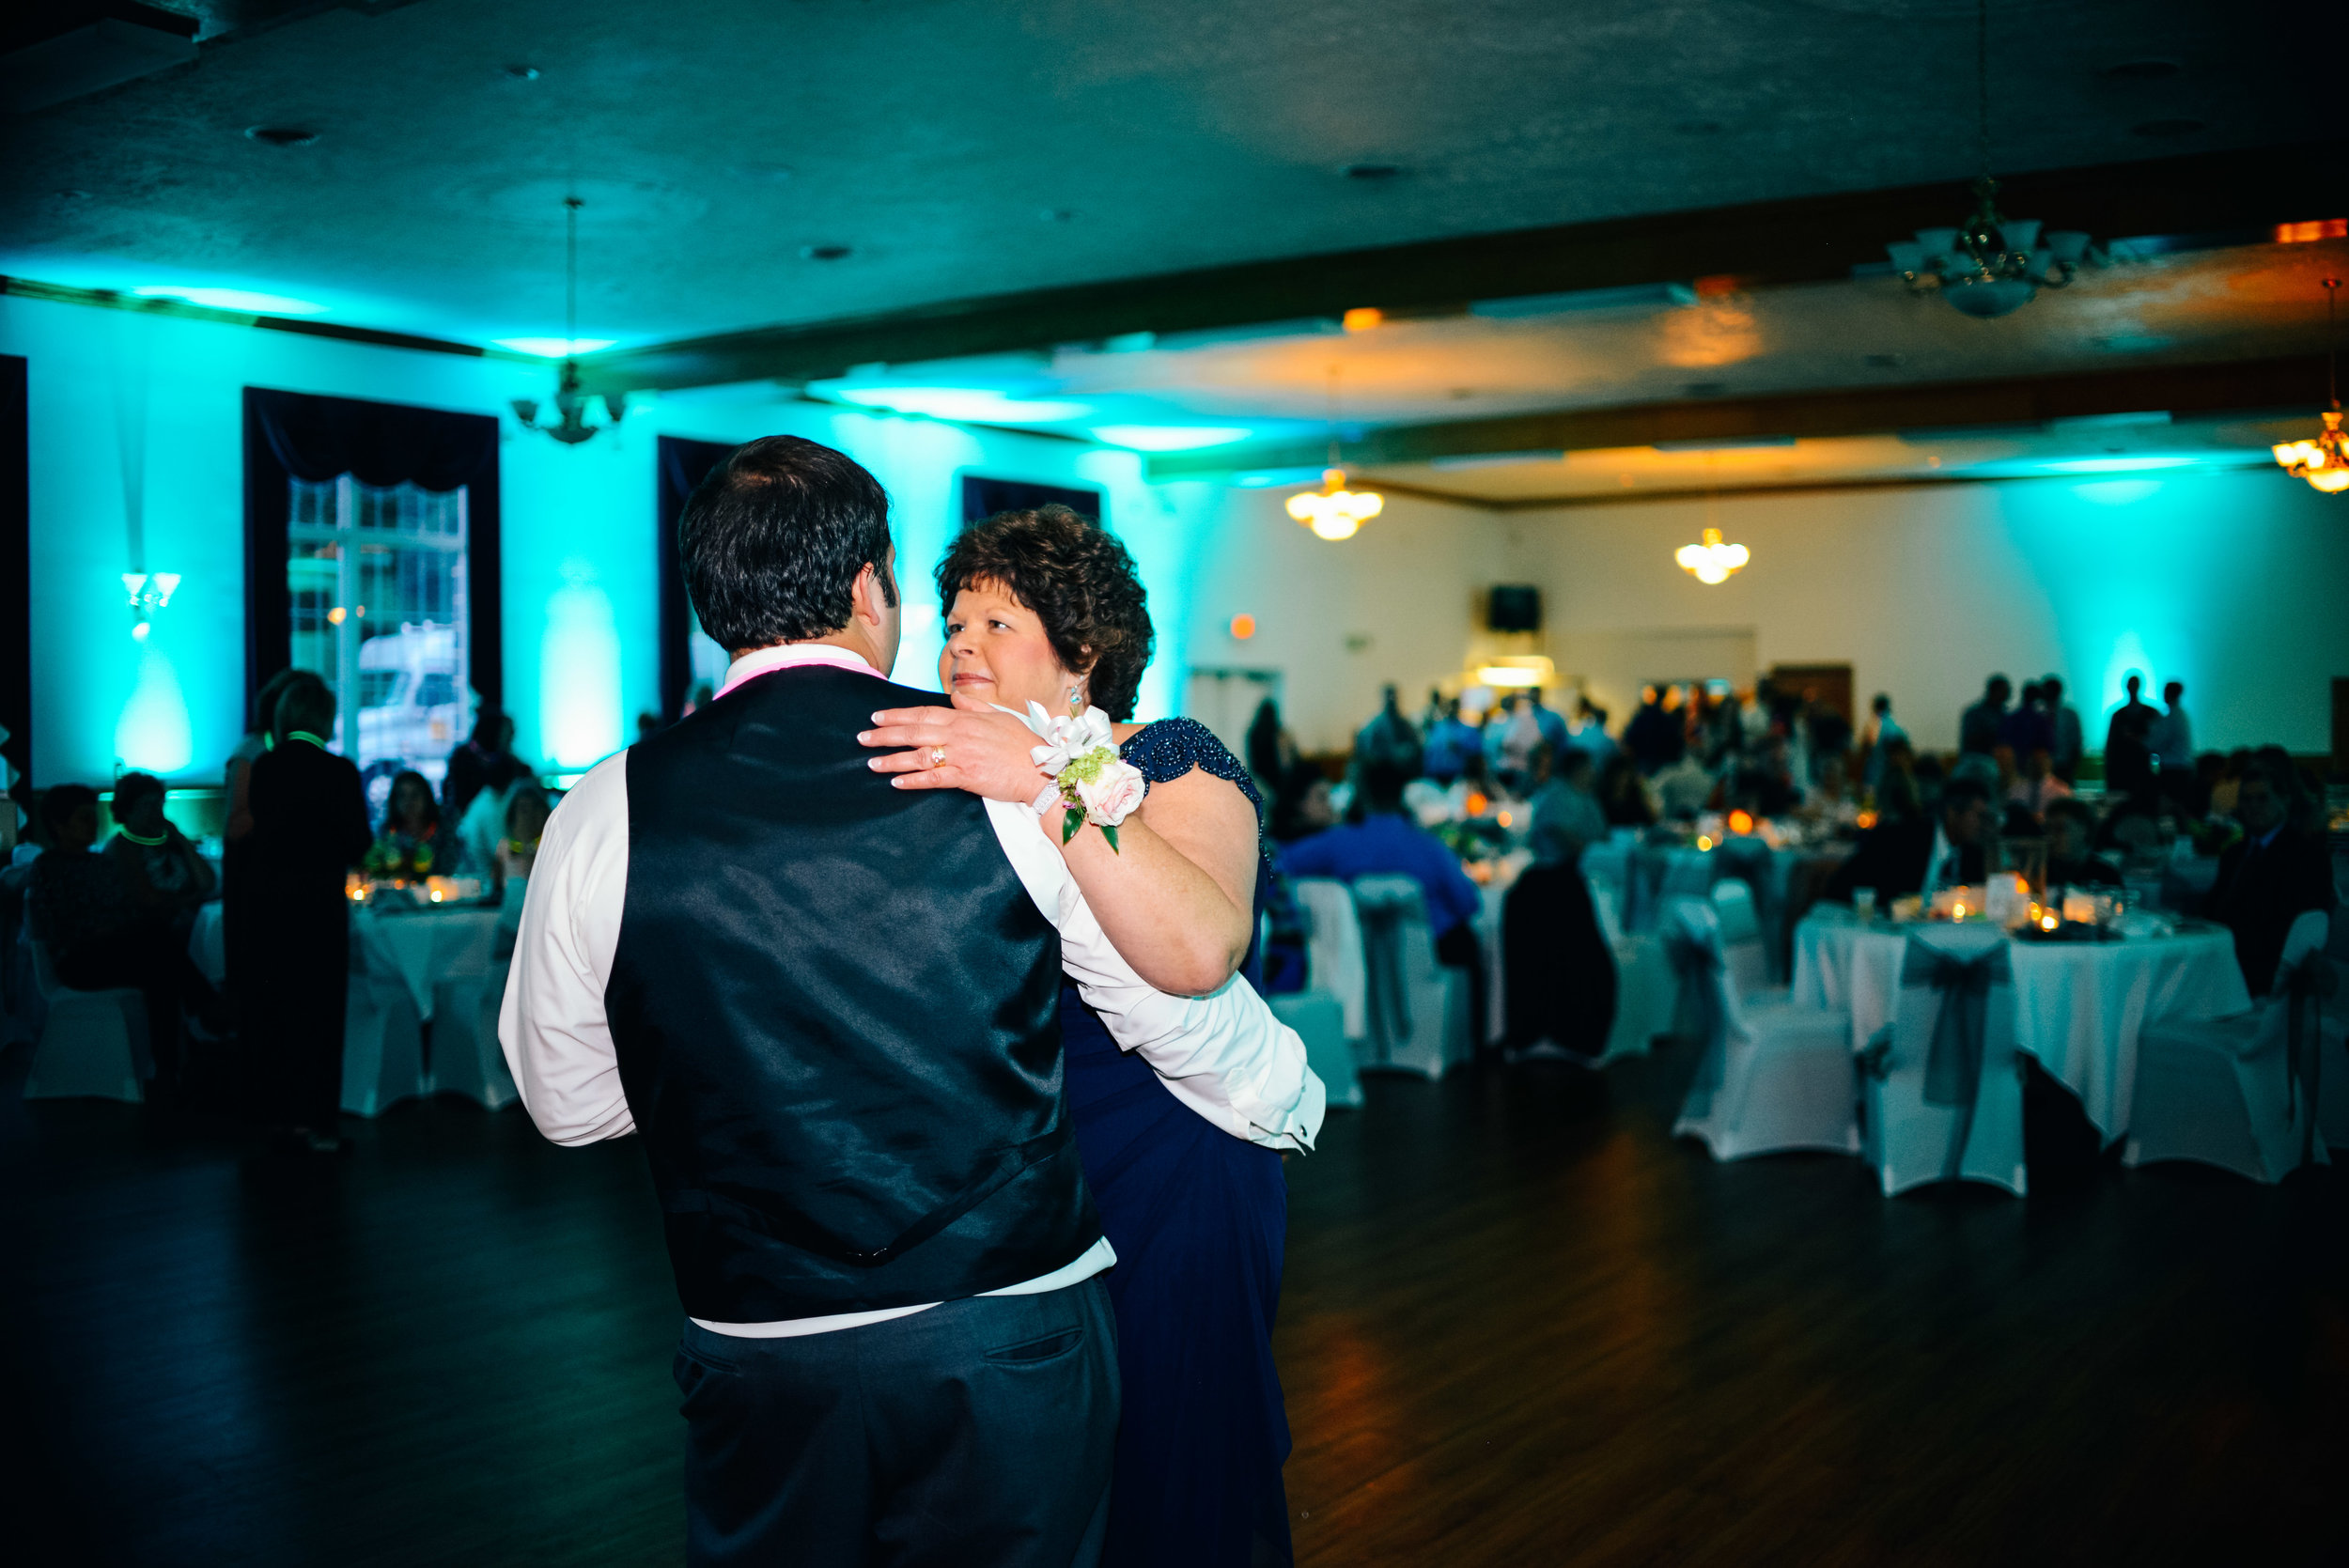 Mother Son Dance at the reception at Contres Greer Social Hall in Northern Camrbia